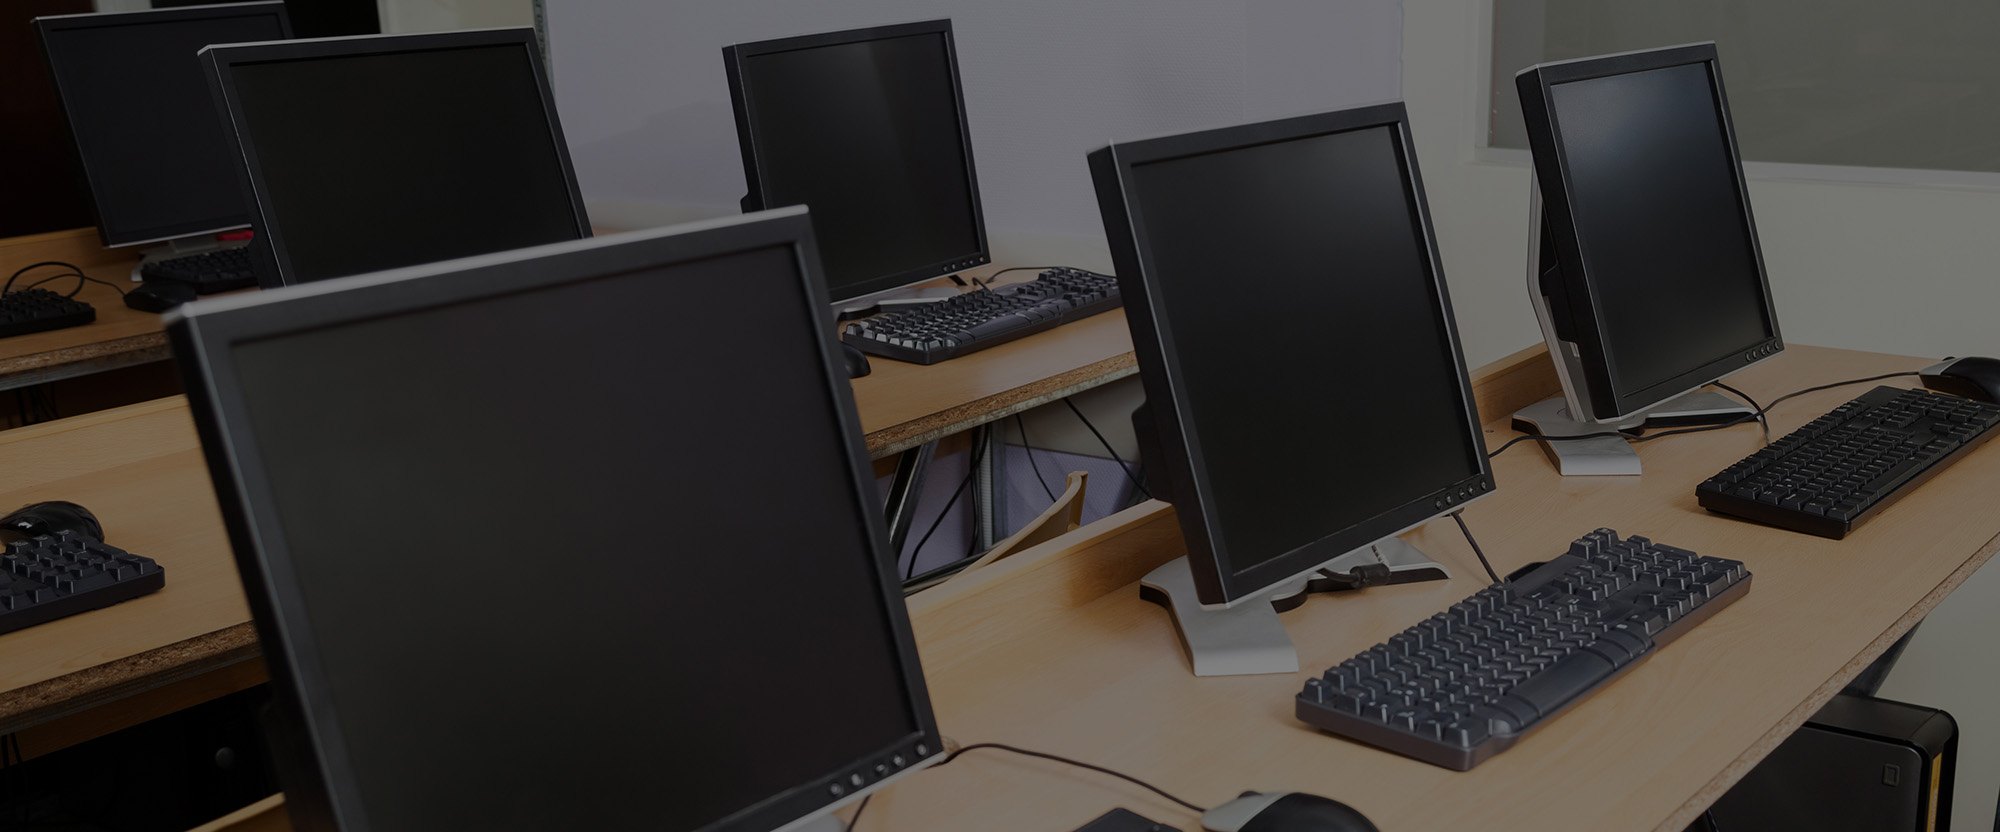 Row of computers on desks in classroom